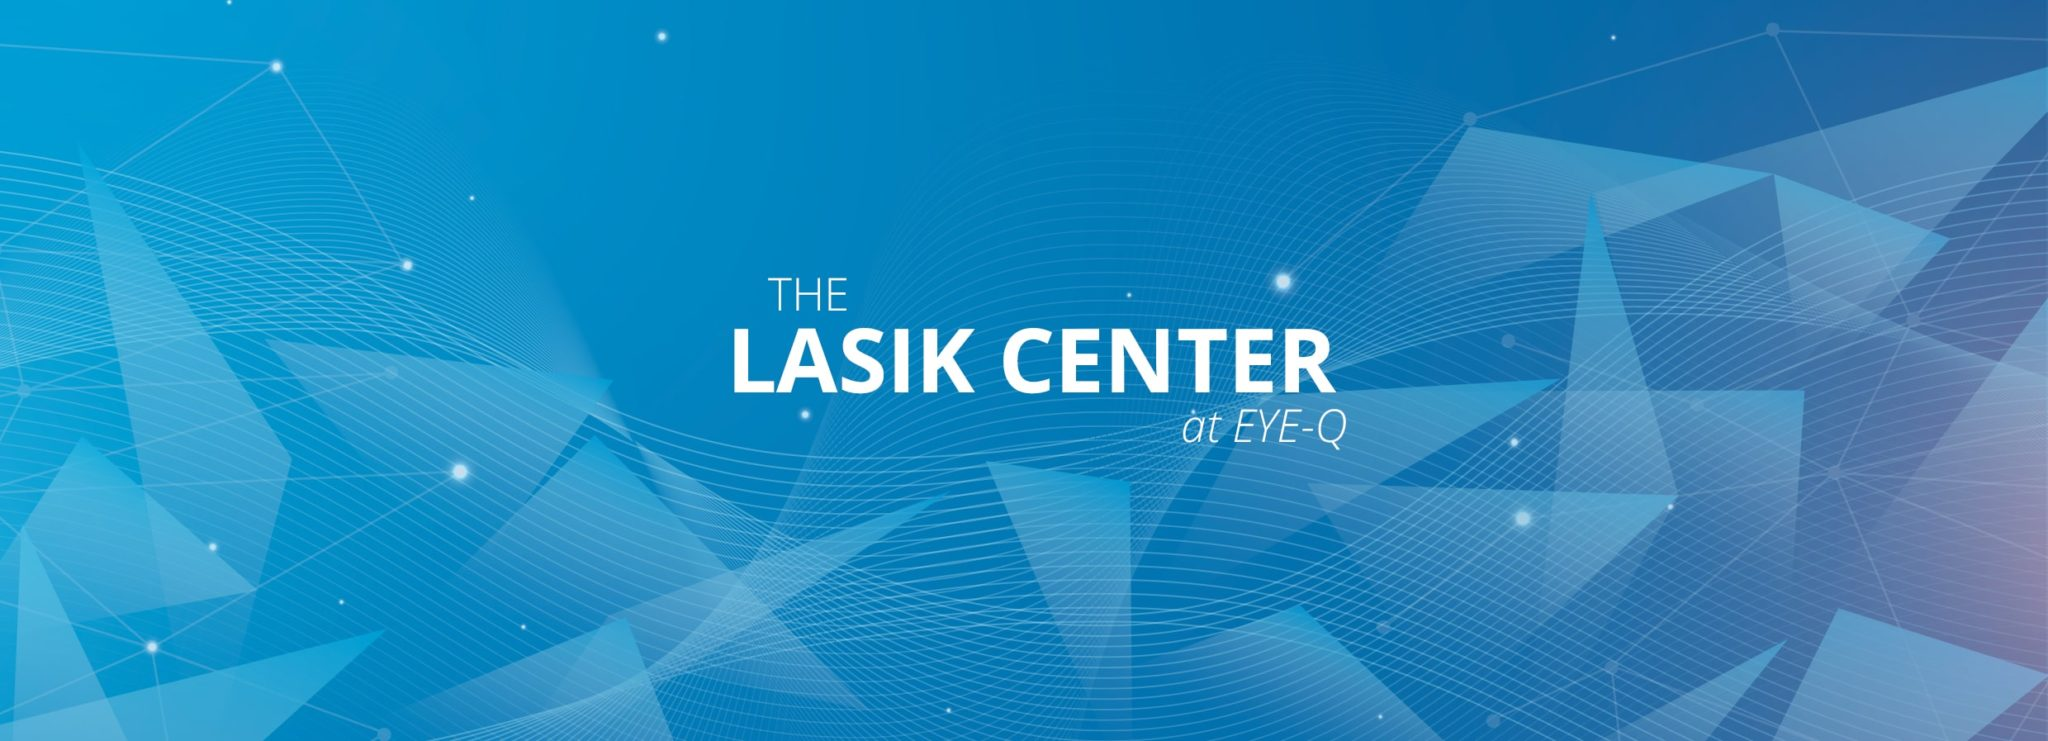 The LASIK Center at EYE-Q